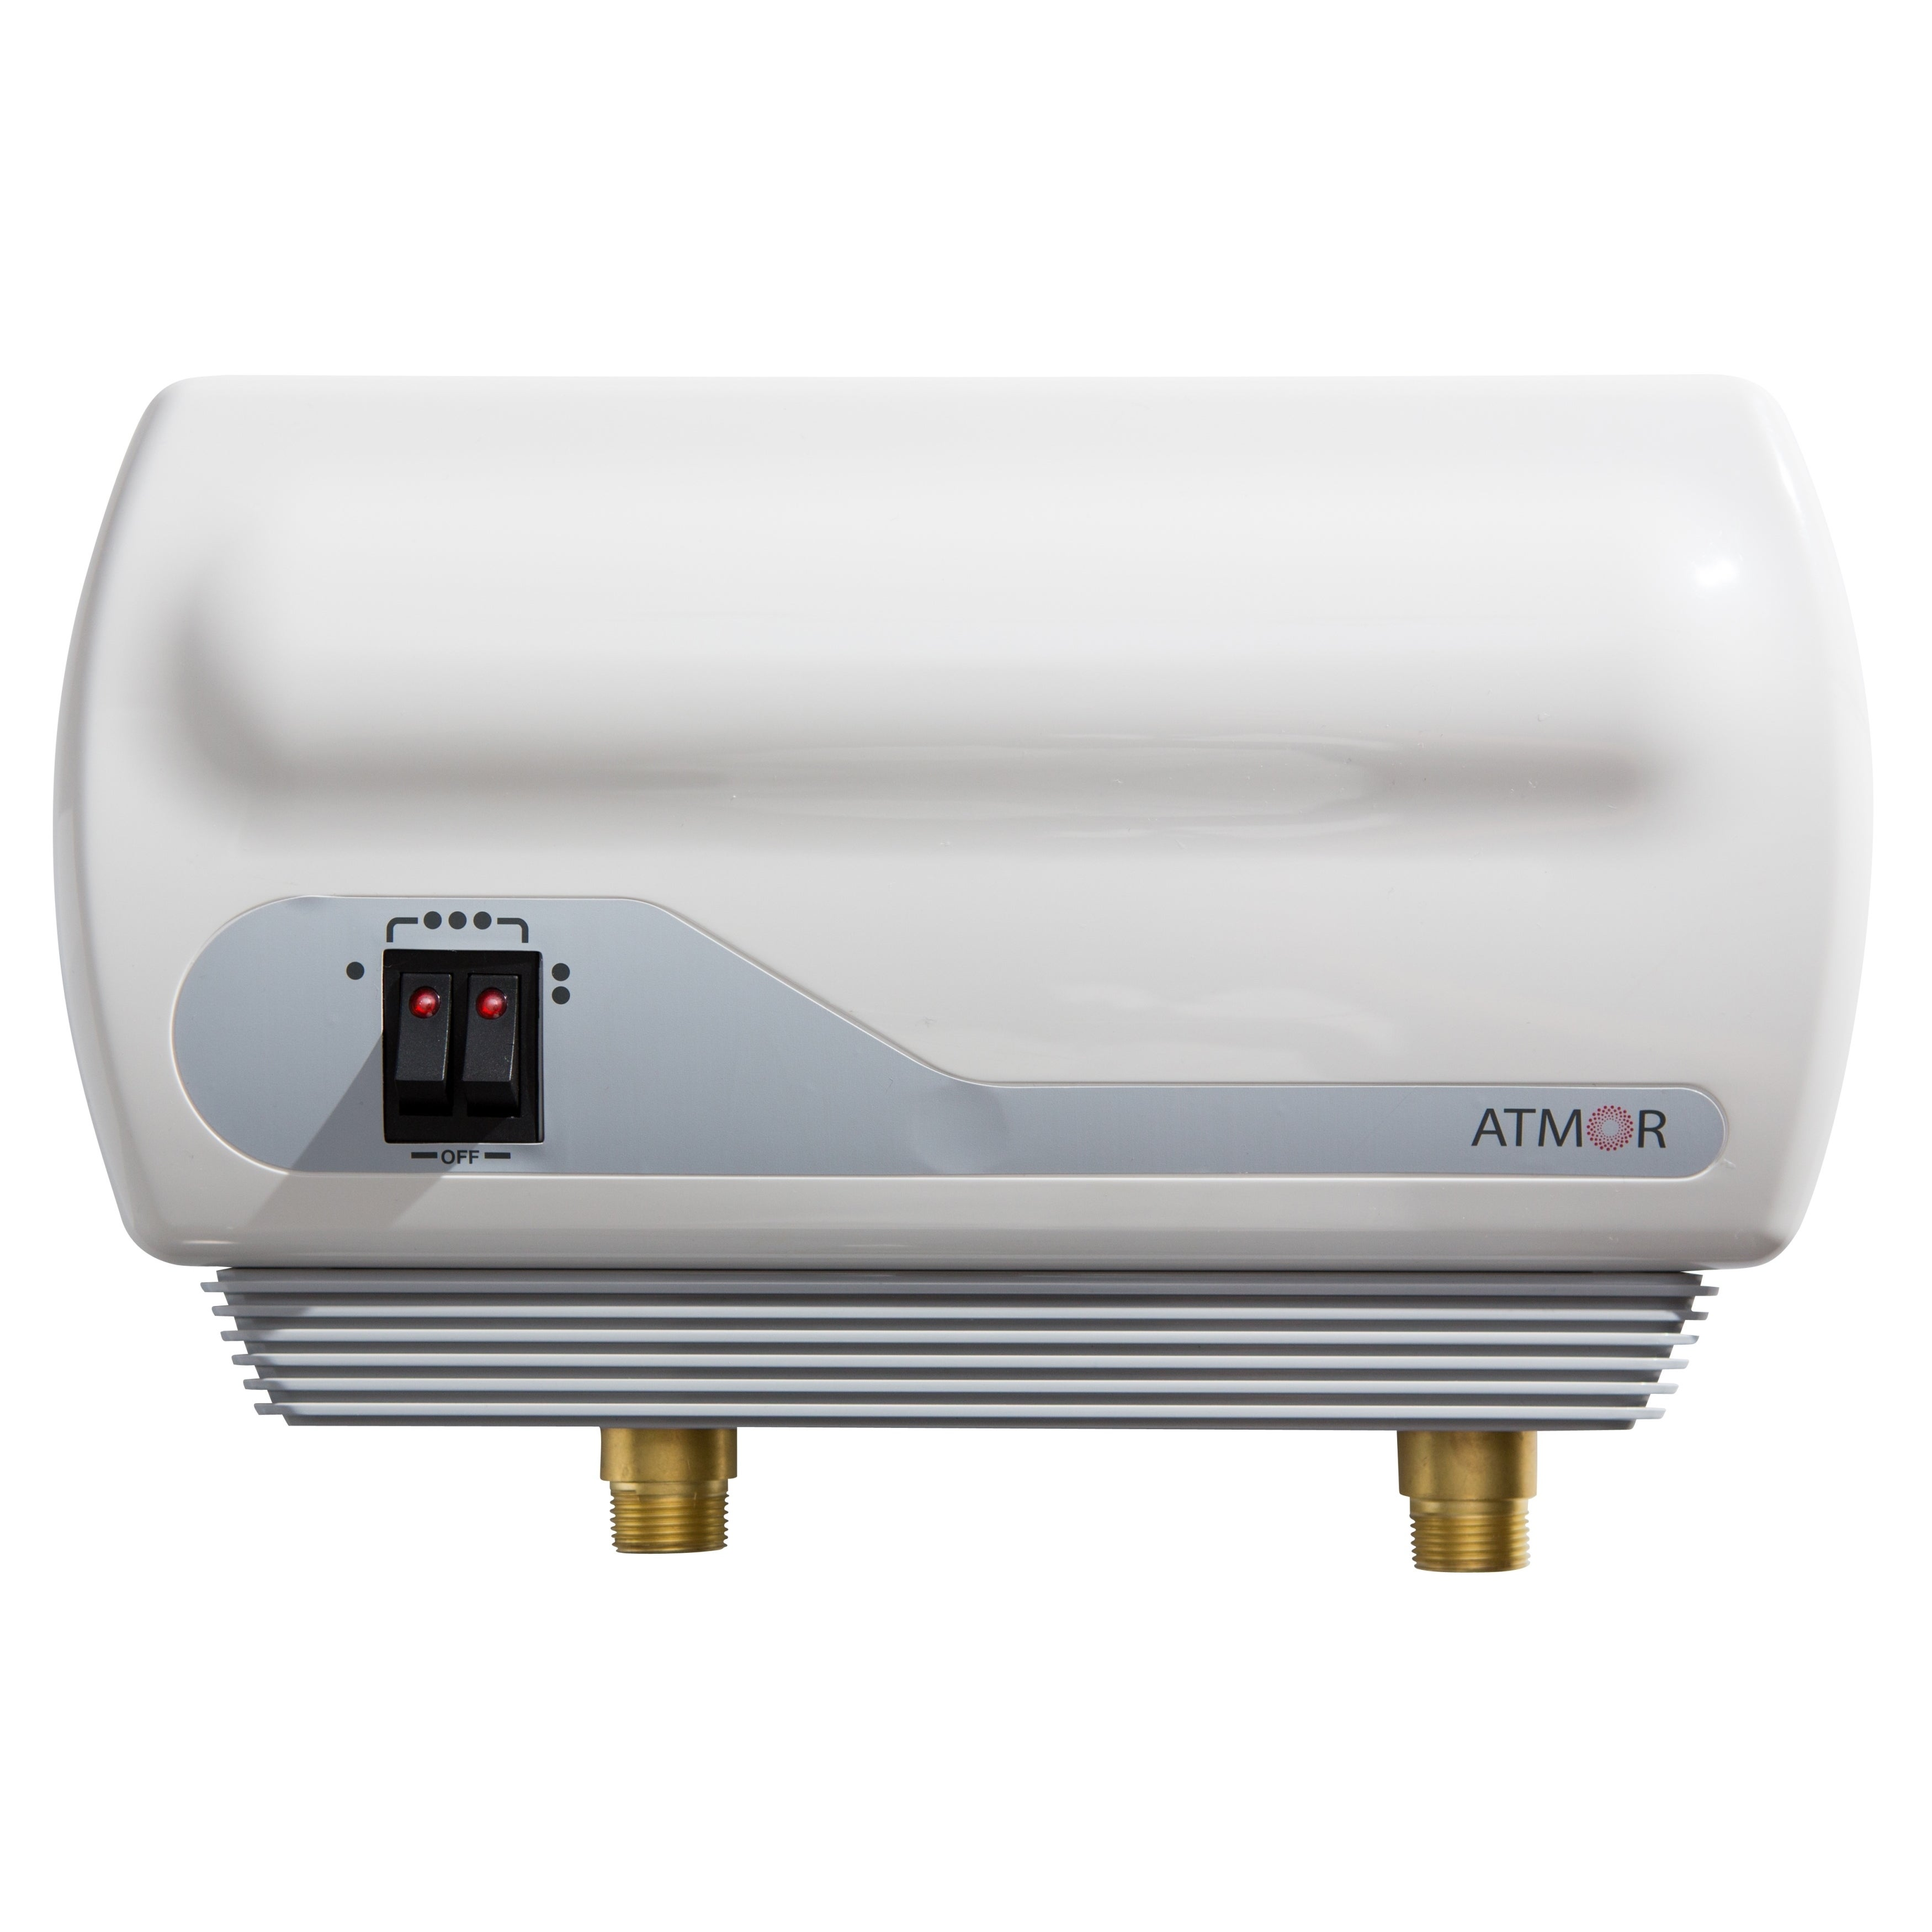 Atmor AT-900-04 (3.8 kW/240V) Tankless Electric Instant W...